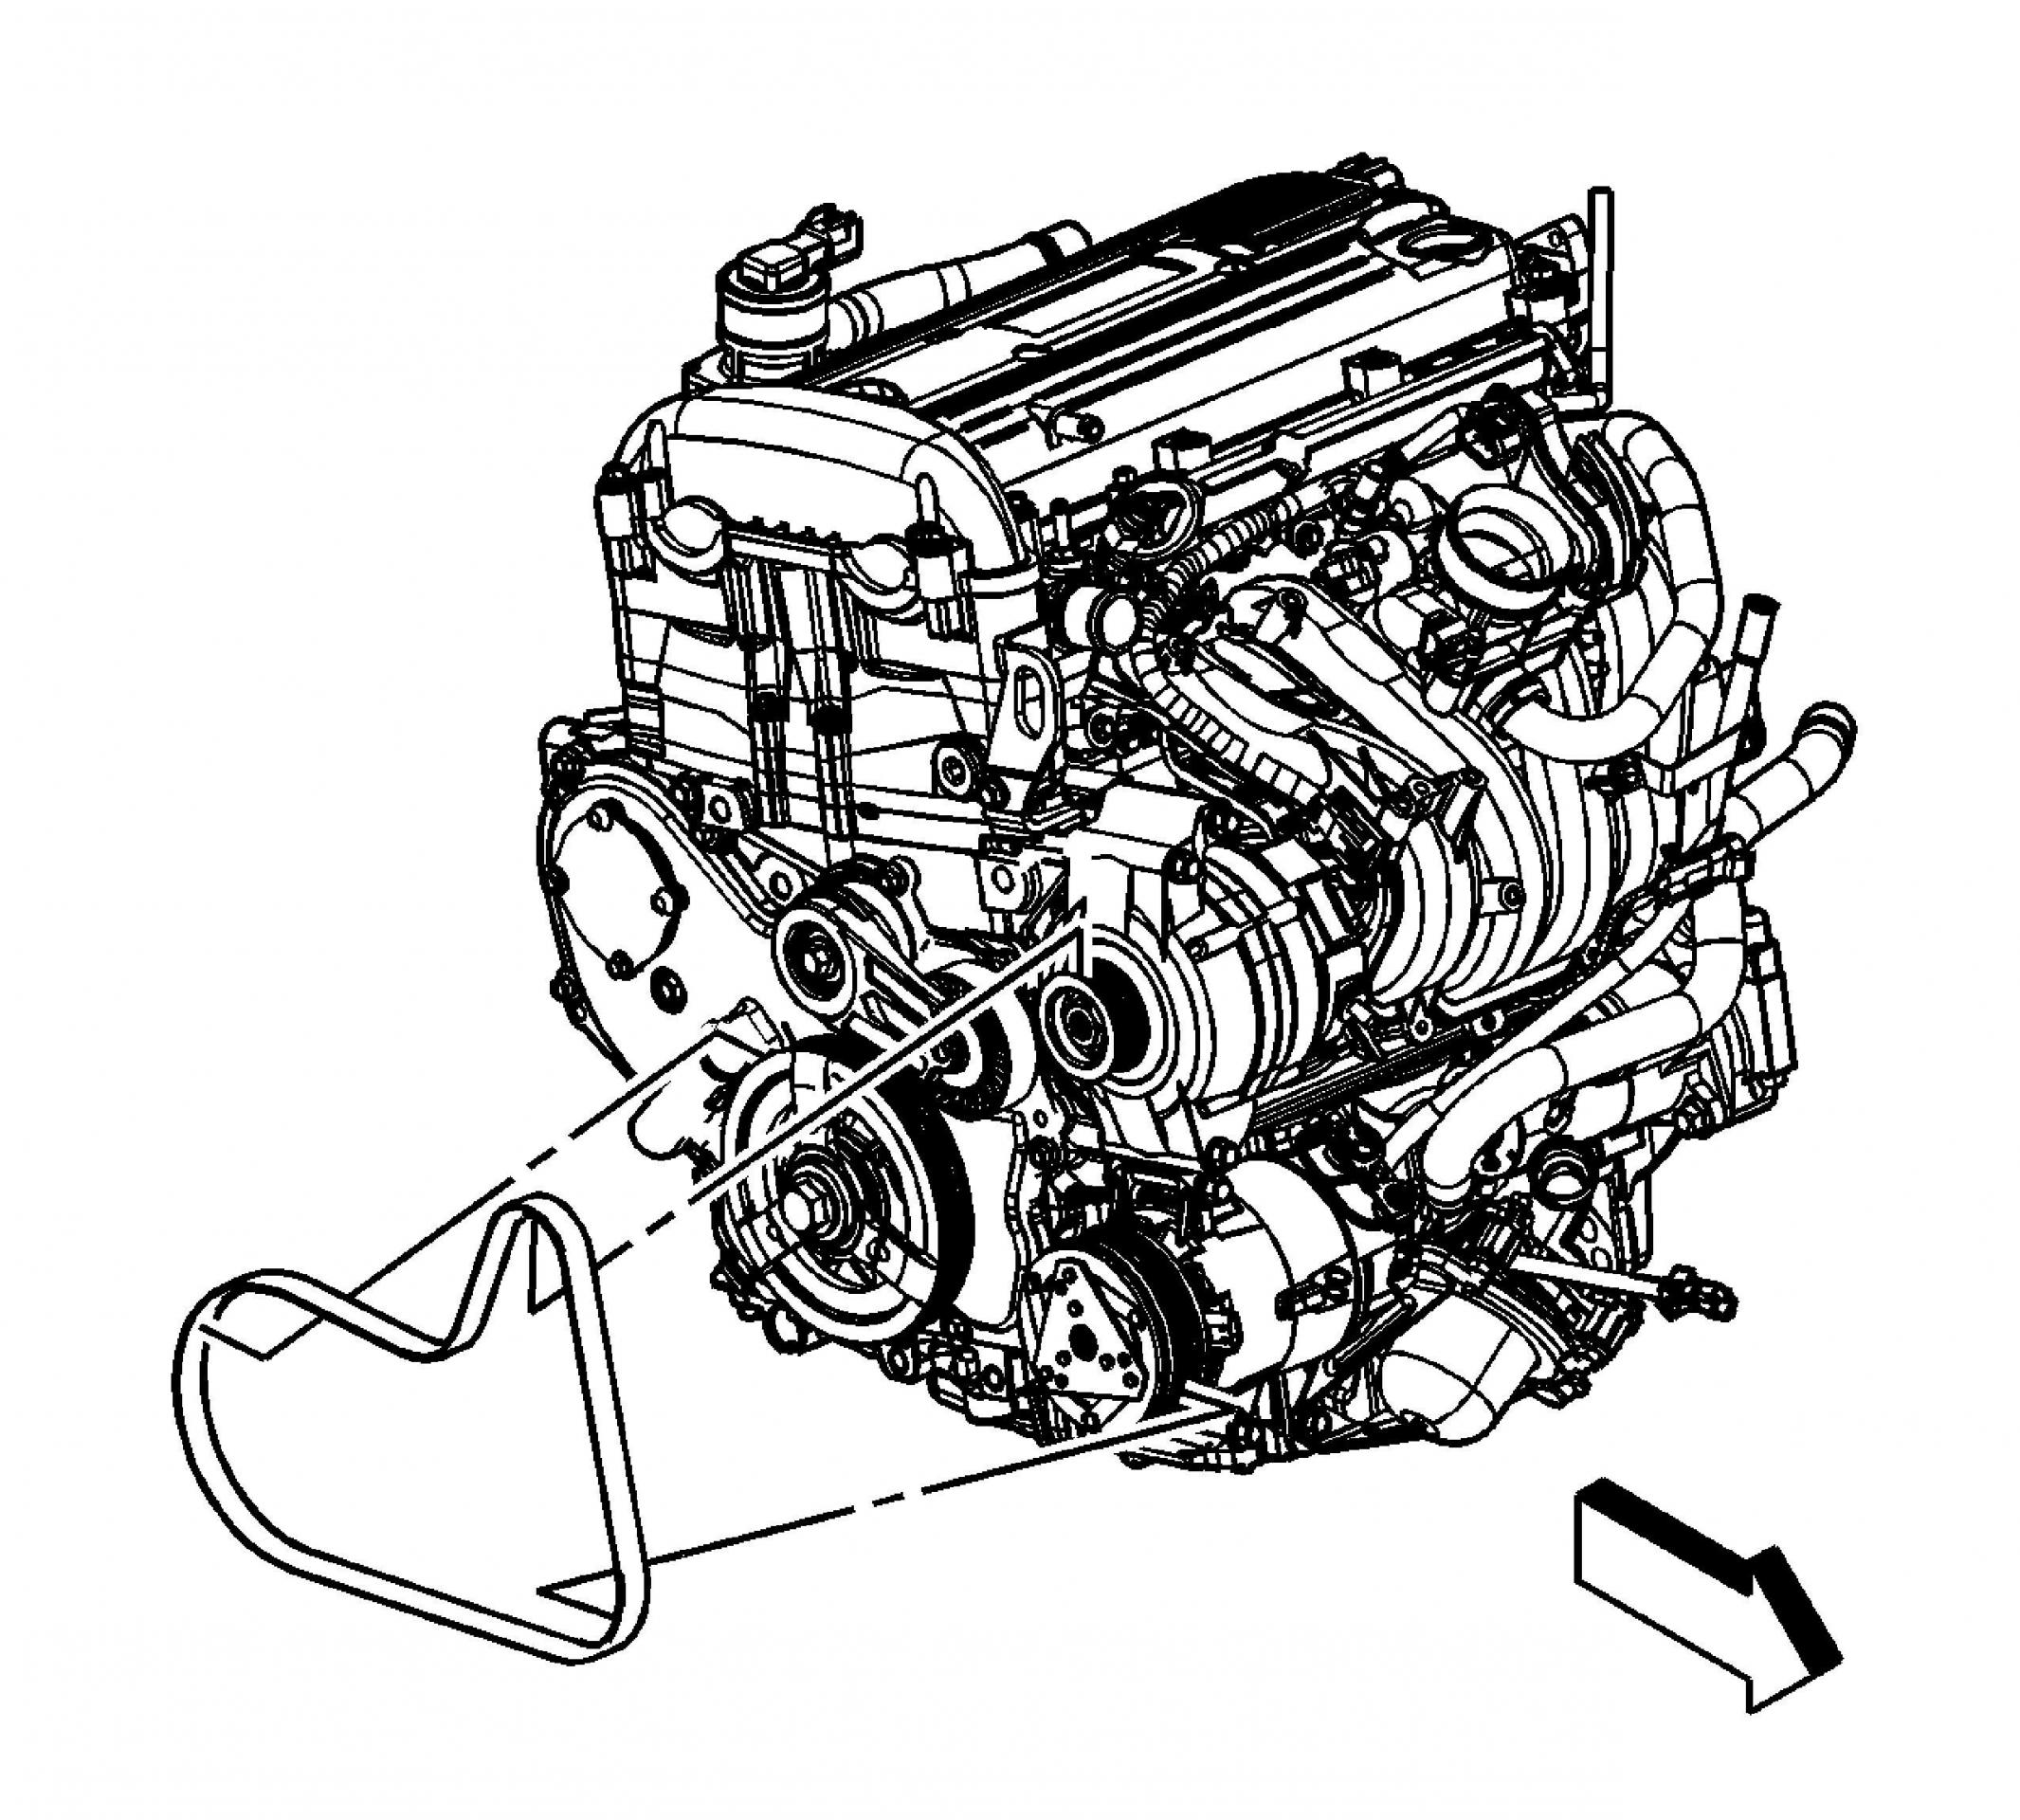 Chevy Equinox Serpentine Belt Diagram